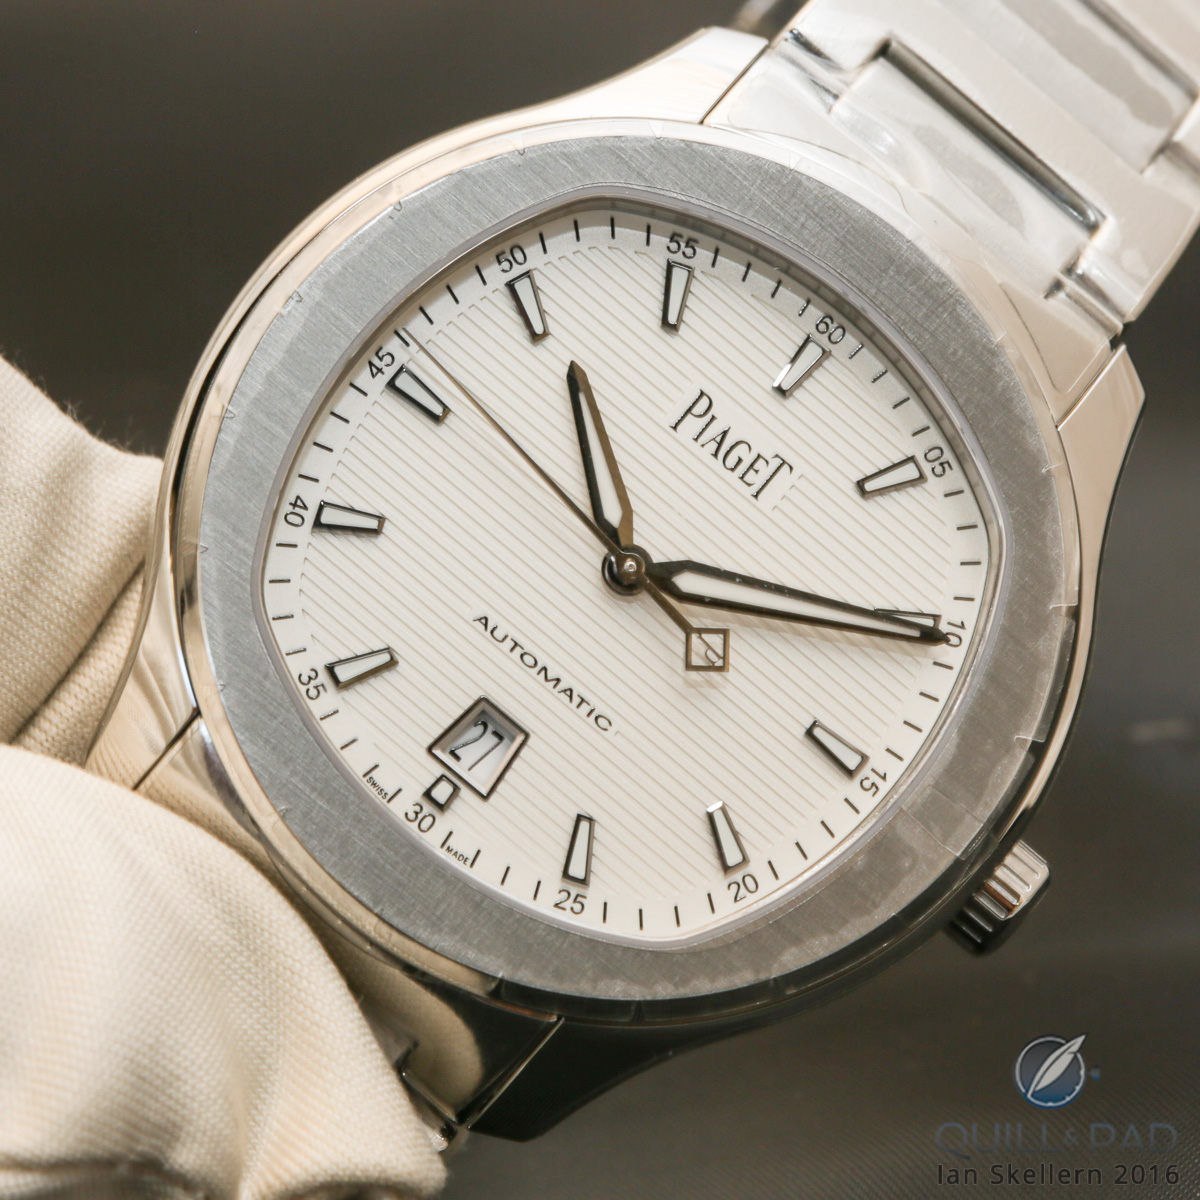 Piaget Polo S chronograph with white dial